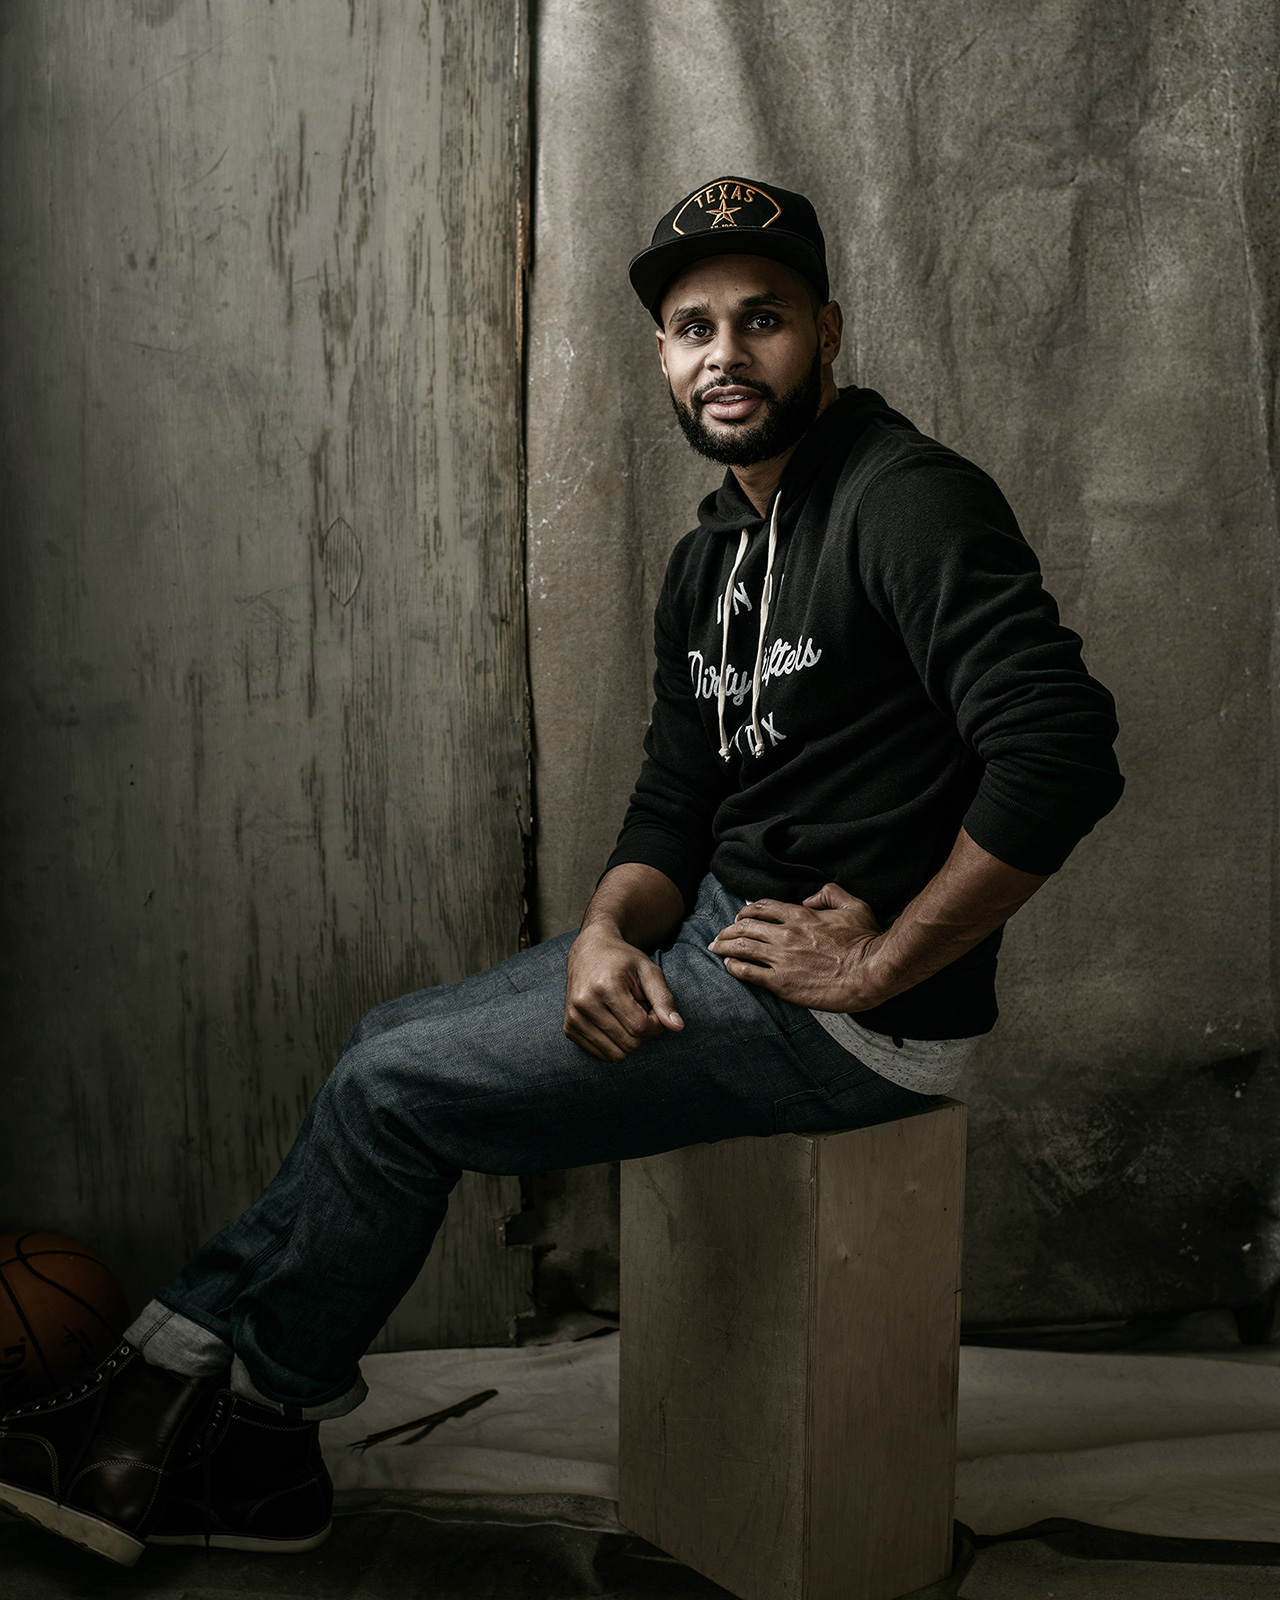 NBA player, Patty Mills, photographed by Josh Huskin.